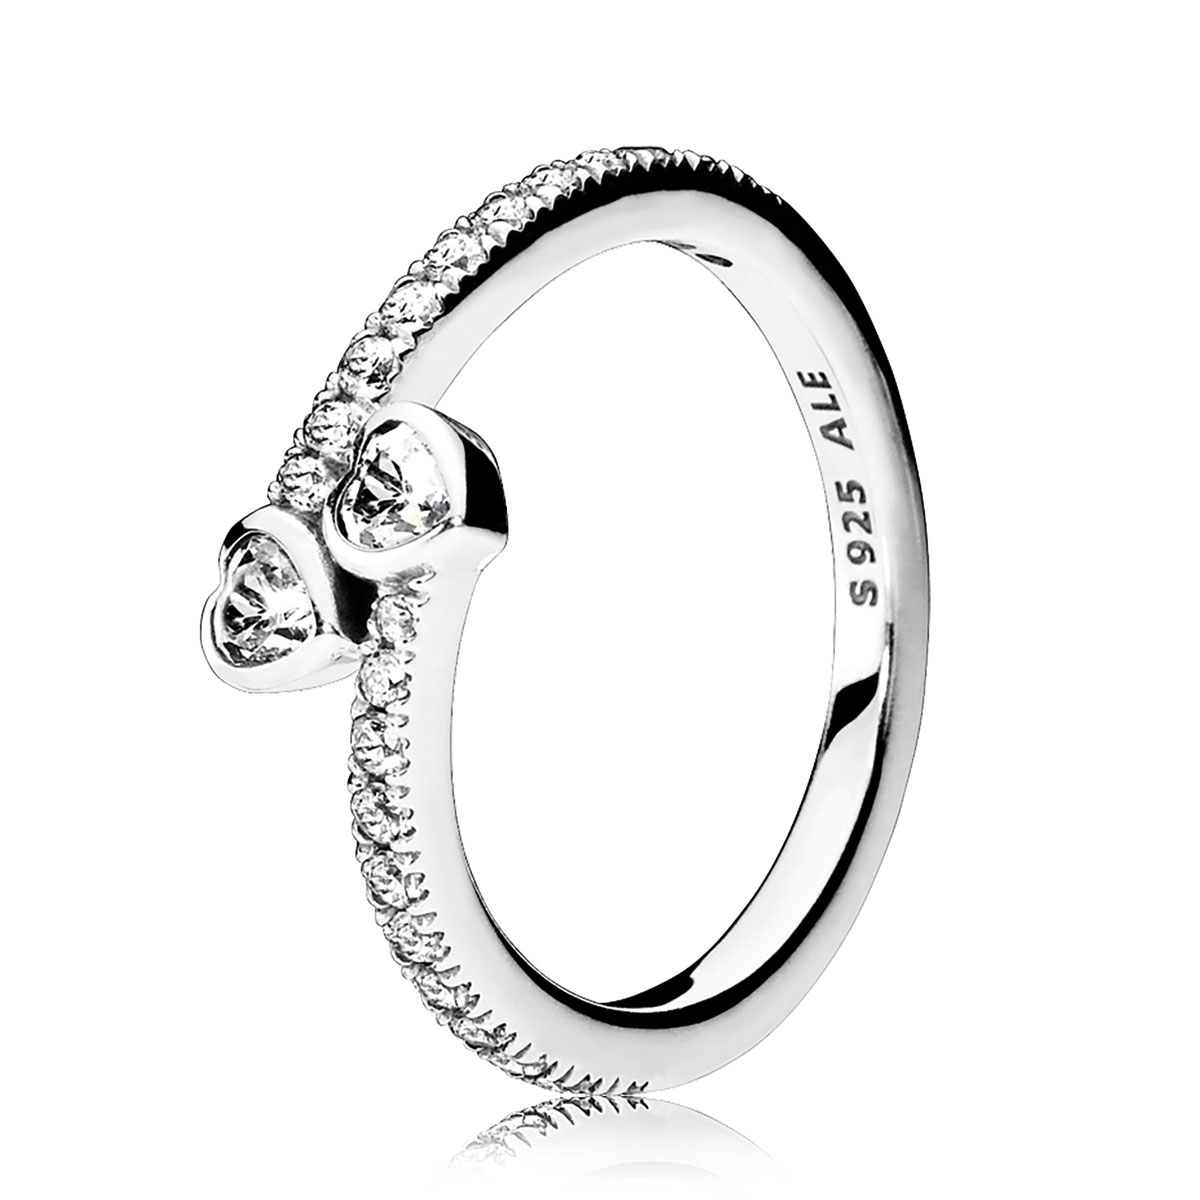 8e30a9f64 PANDORA Abstract Elegance, Clear CZ Ring - Pancharmbracelets.com